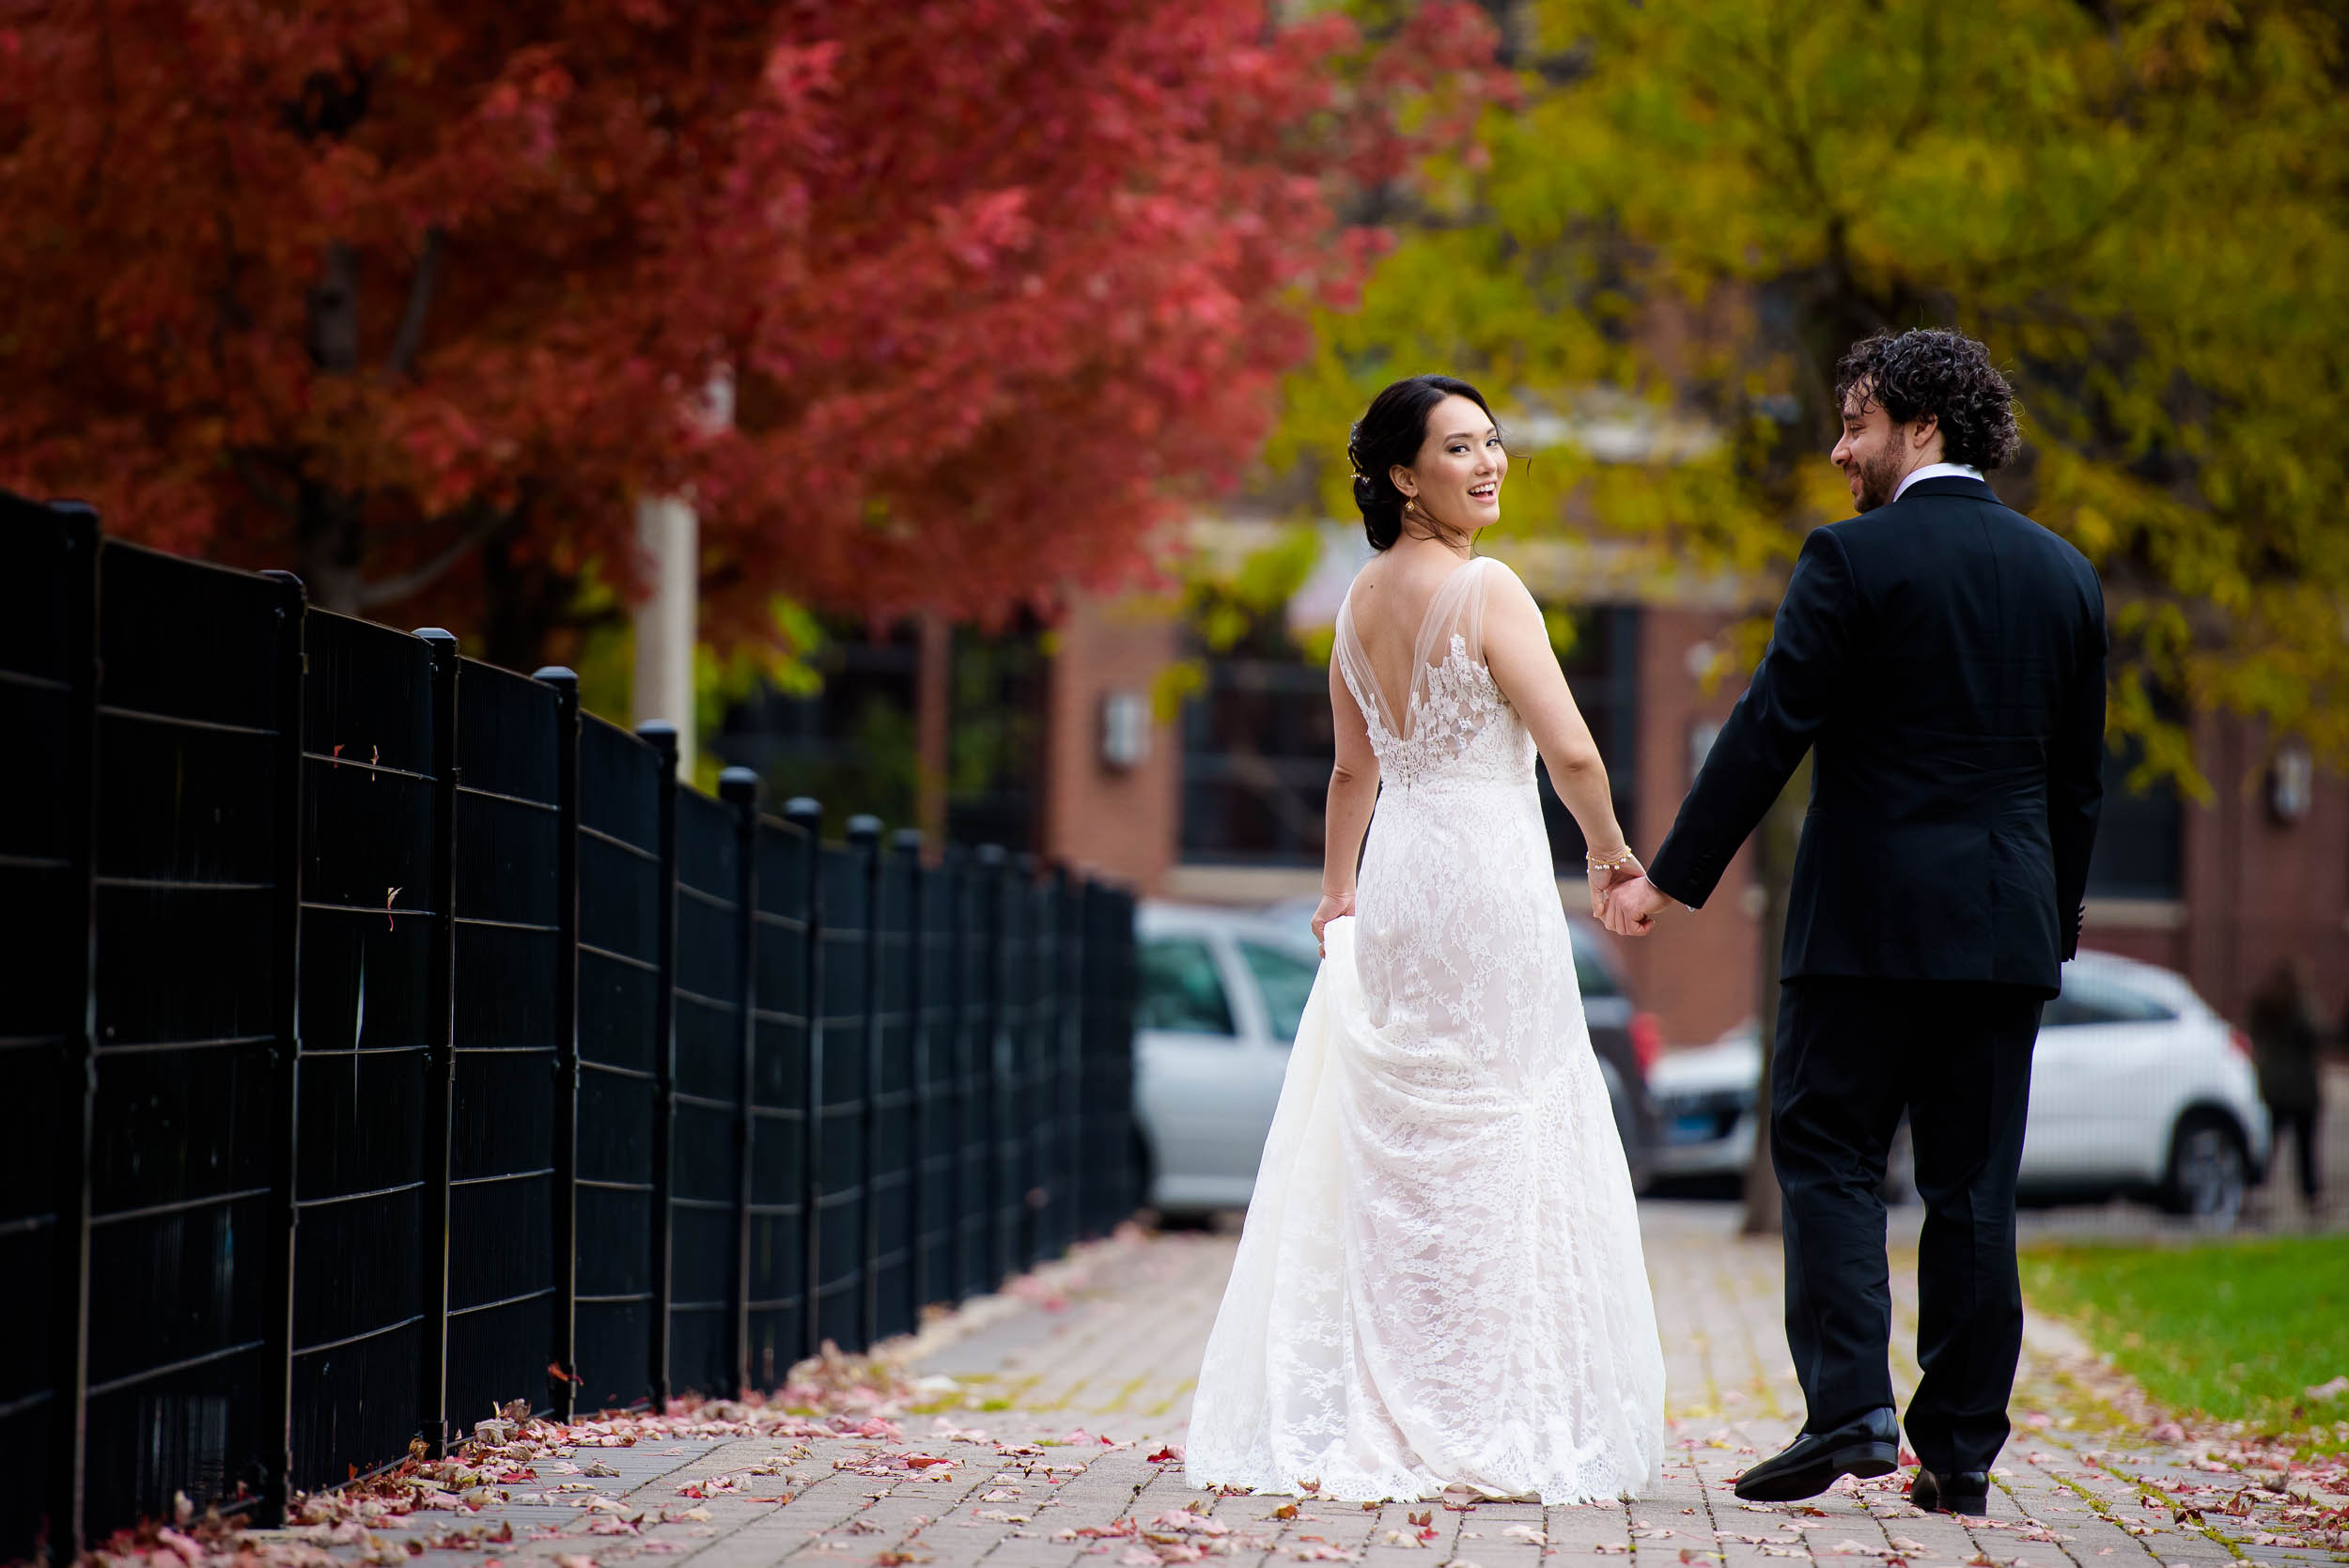 Fun wedding photo of bride and groom at Mary Bartelme Park Chicago.